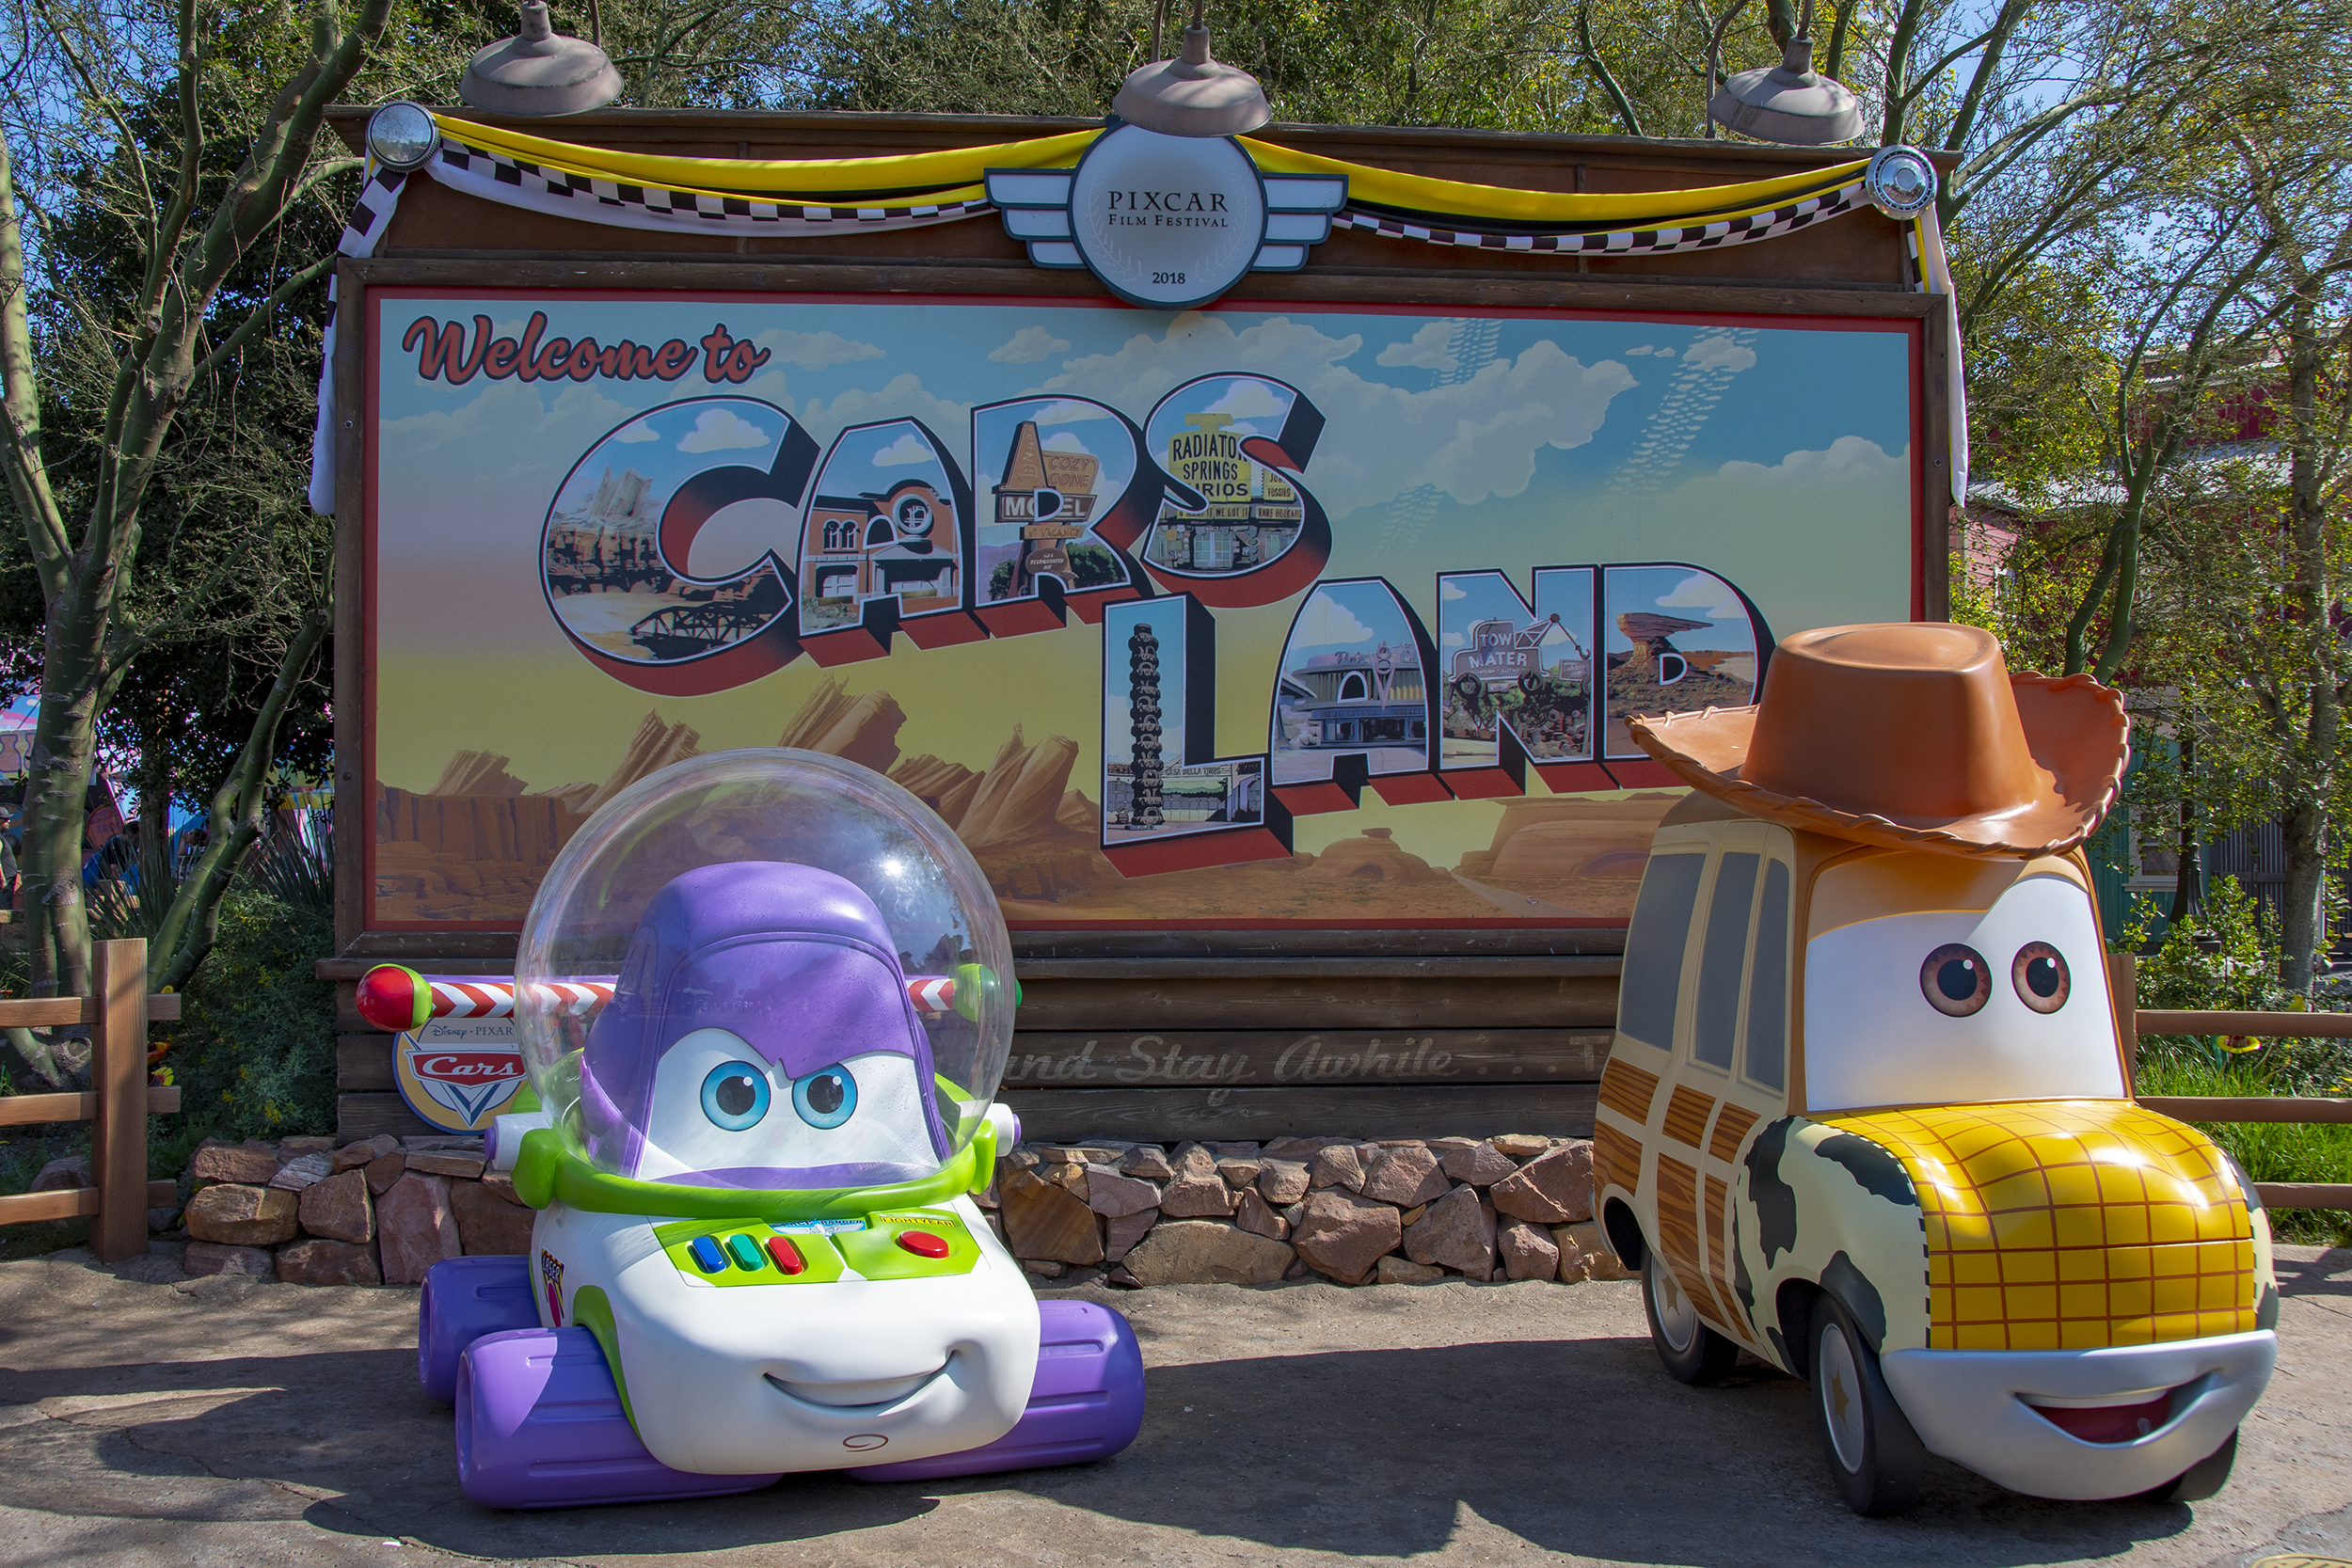 cars land pixar fest disneyland tillbakablick på resorna under 2018